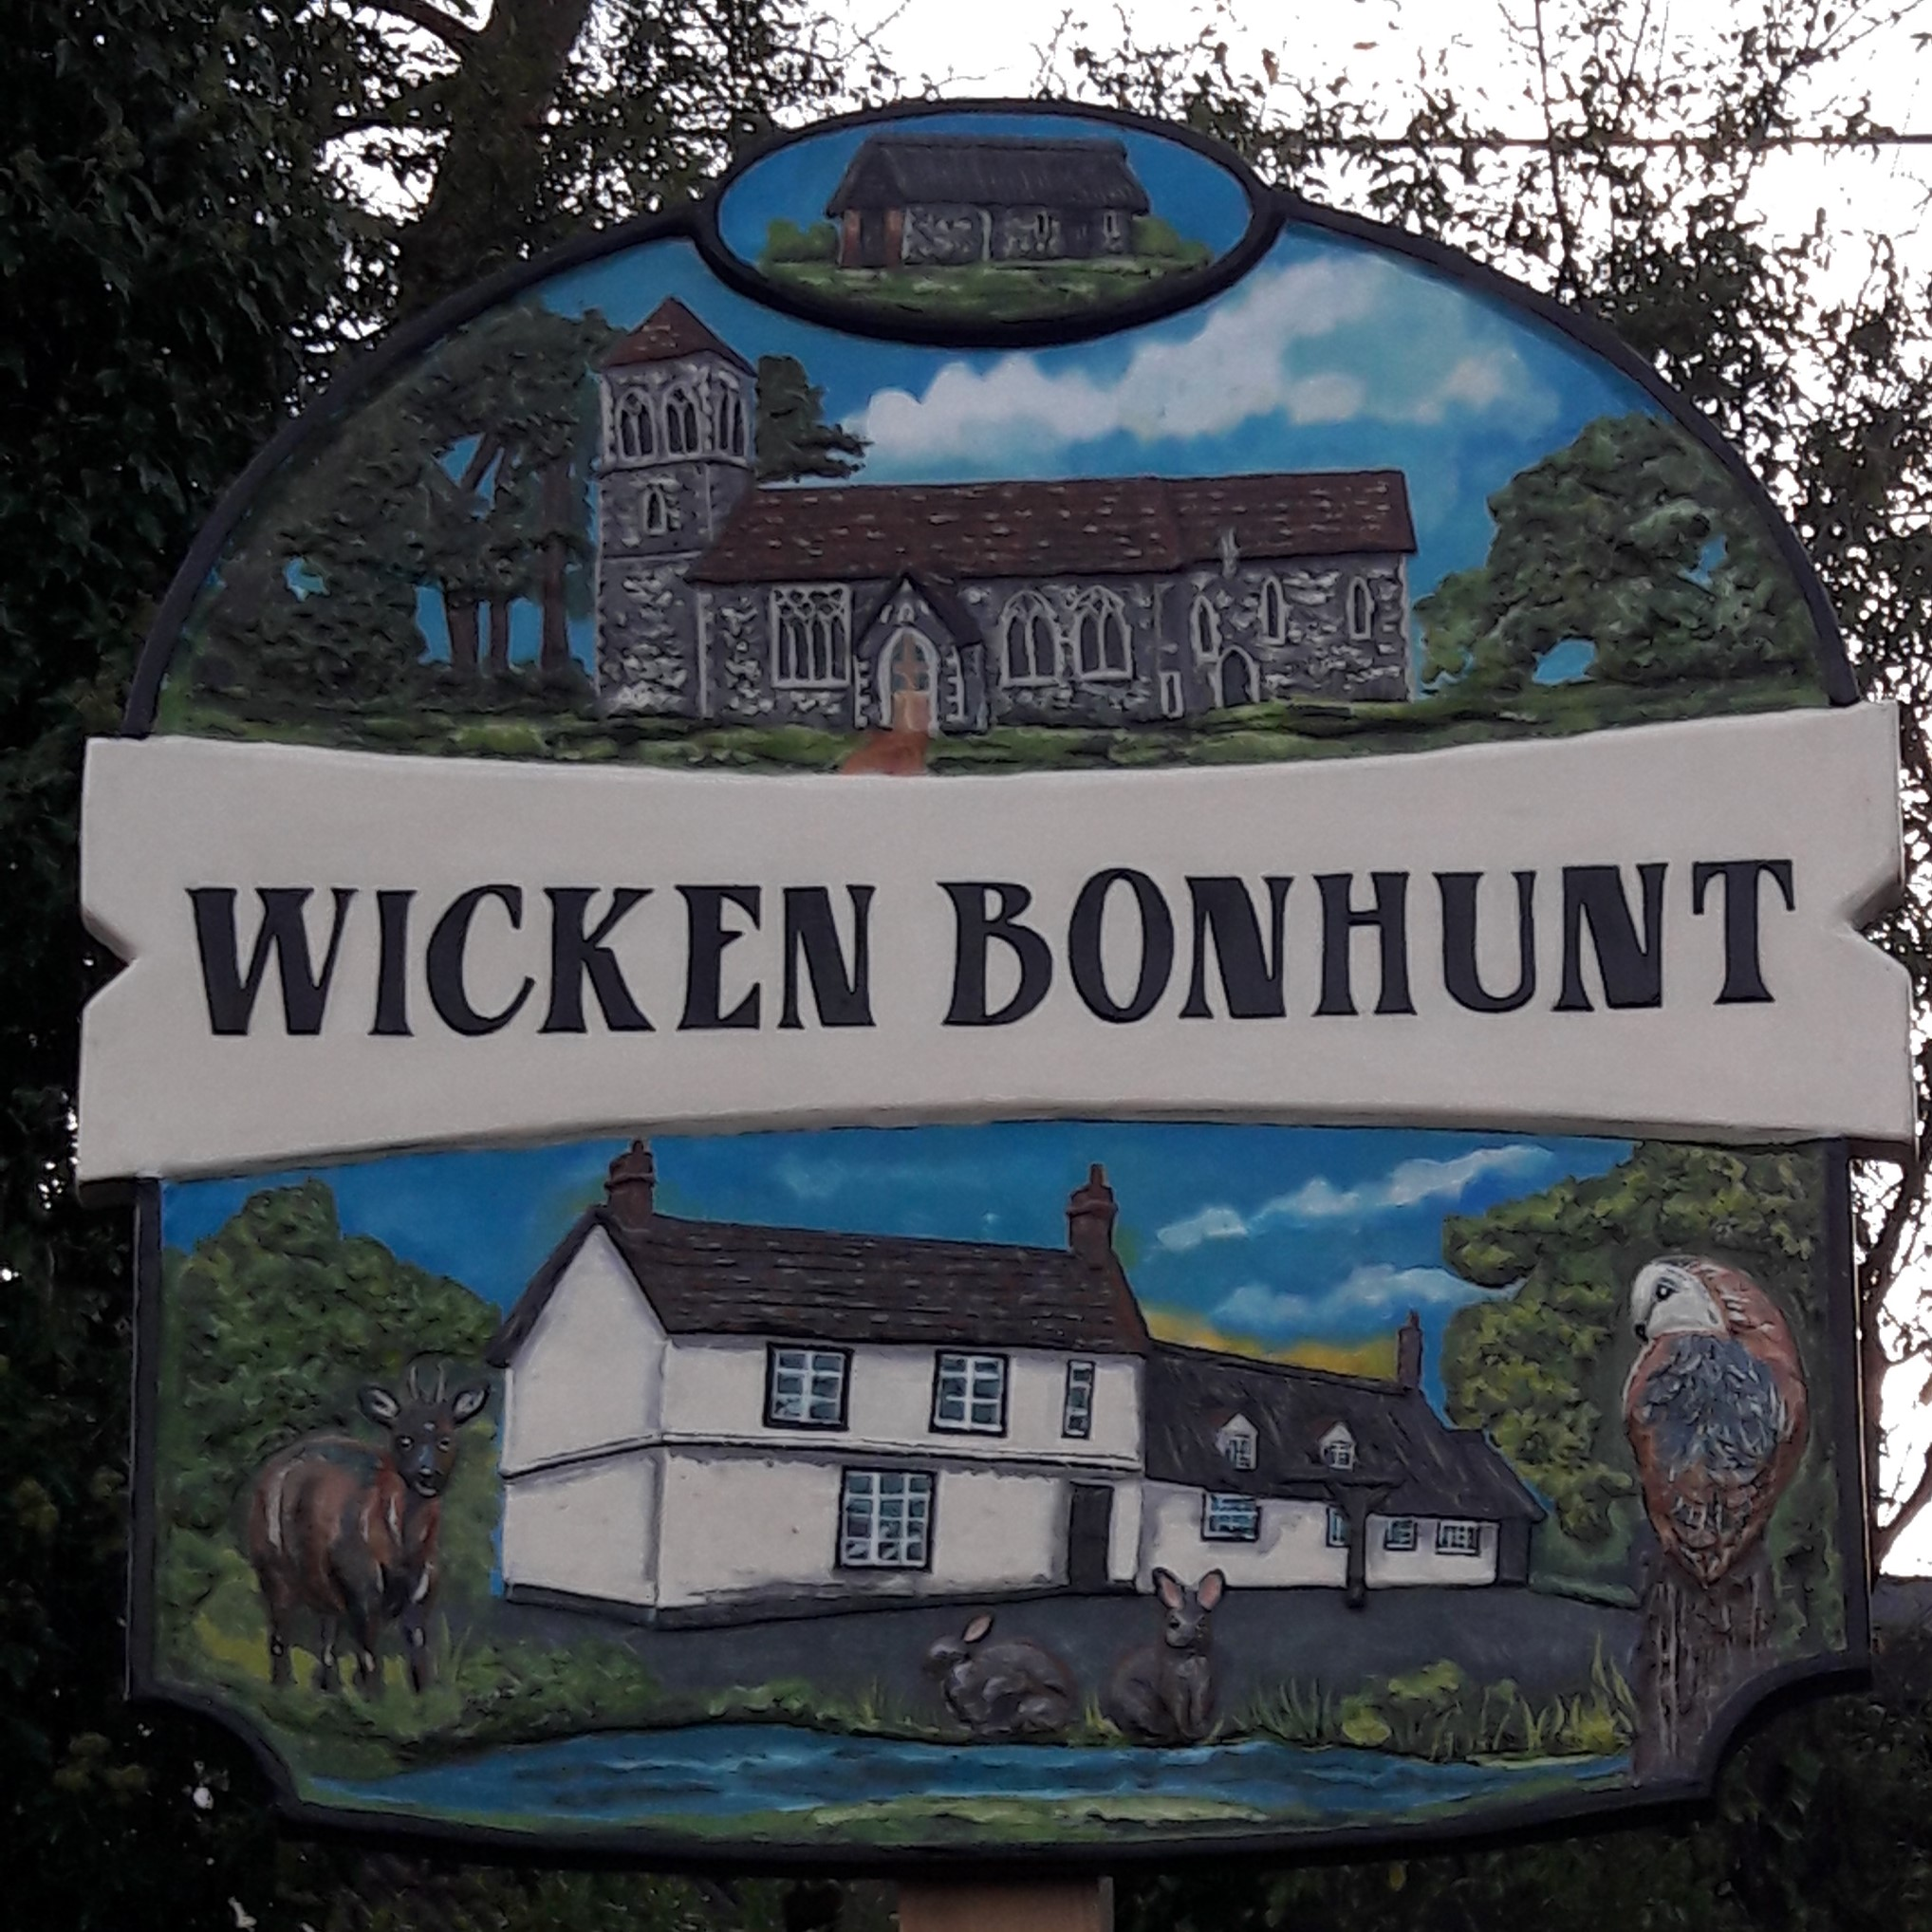 Wicken Bonhunt Village